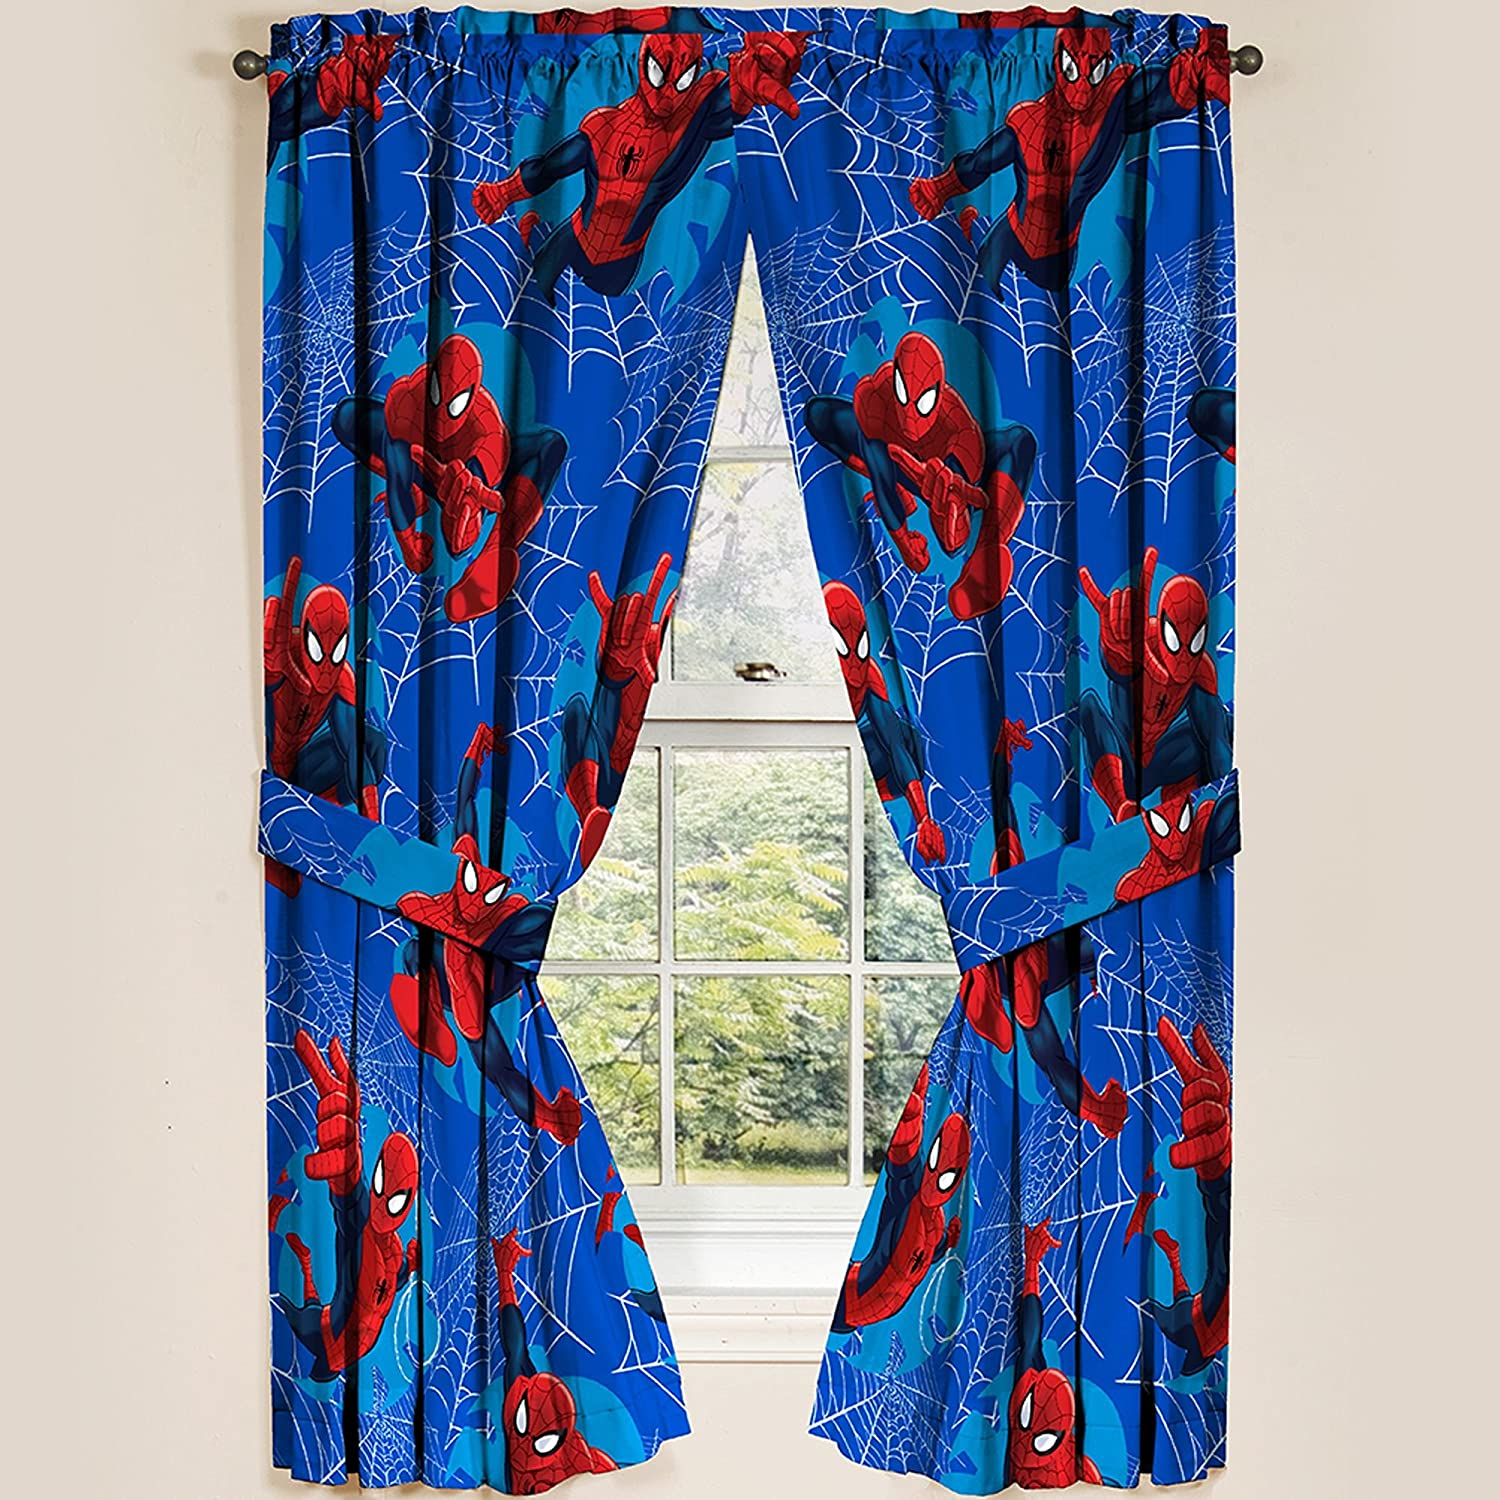 Marvel Ultimate Spiderman Spider-Man Panels Drapes Curtains, Set of 2